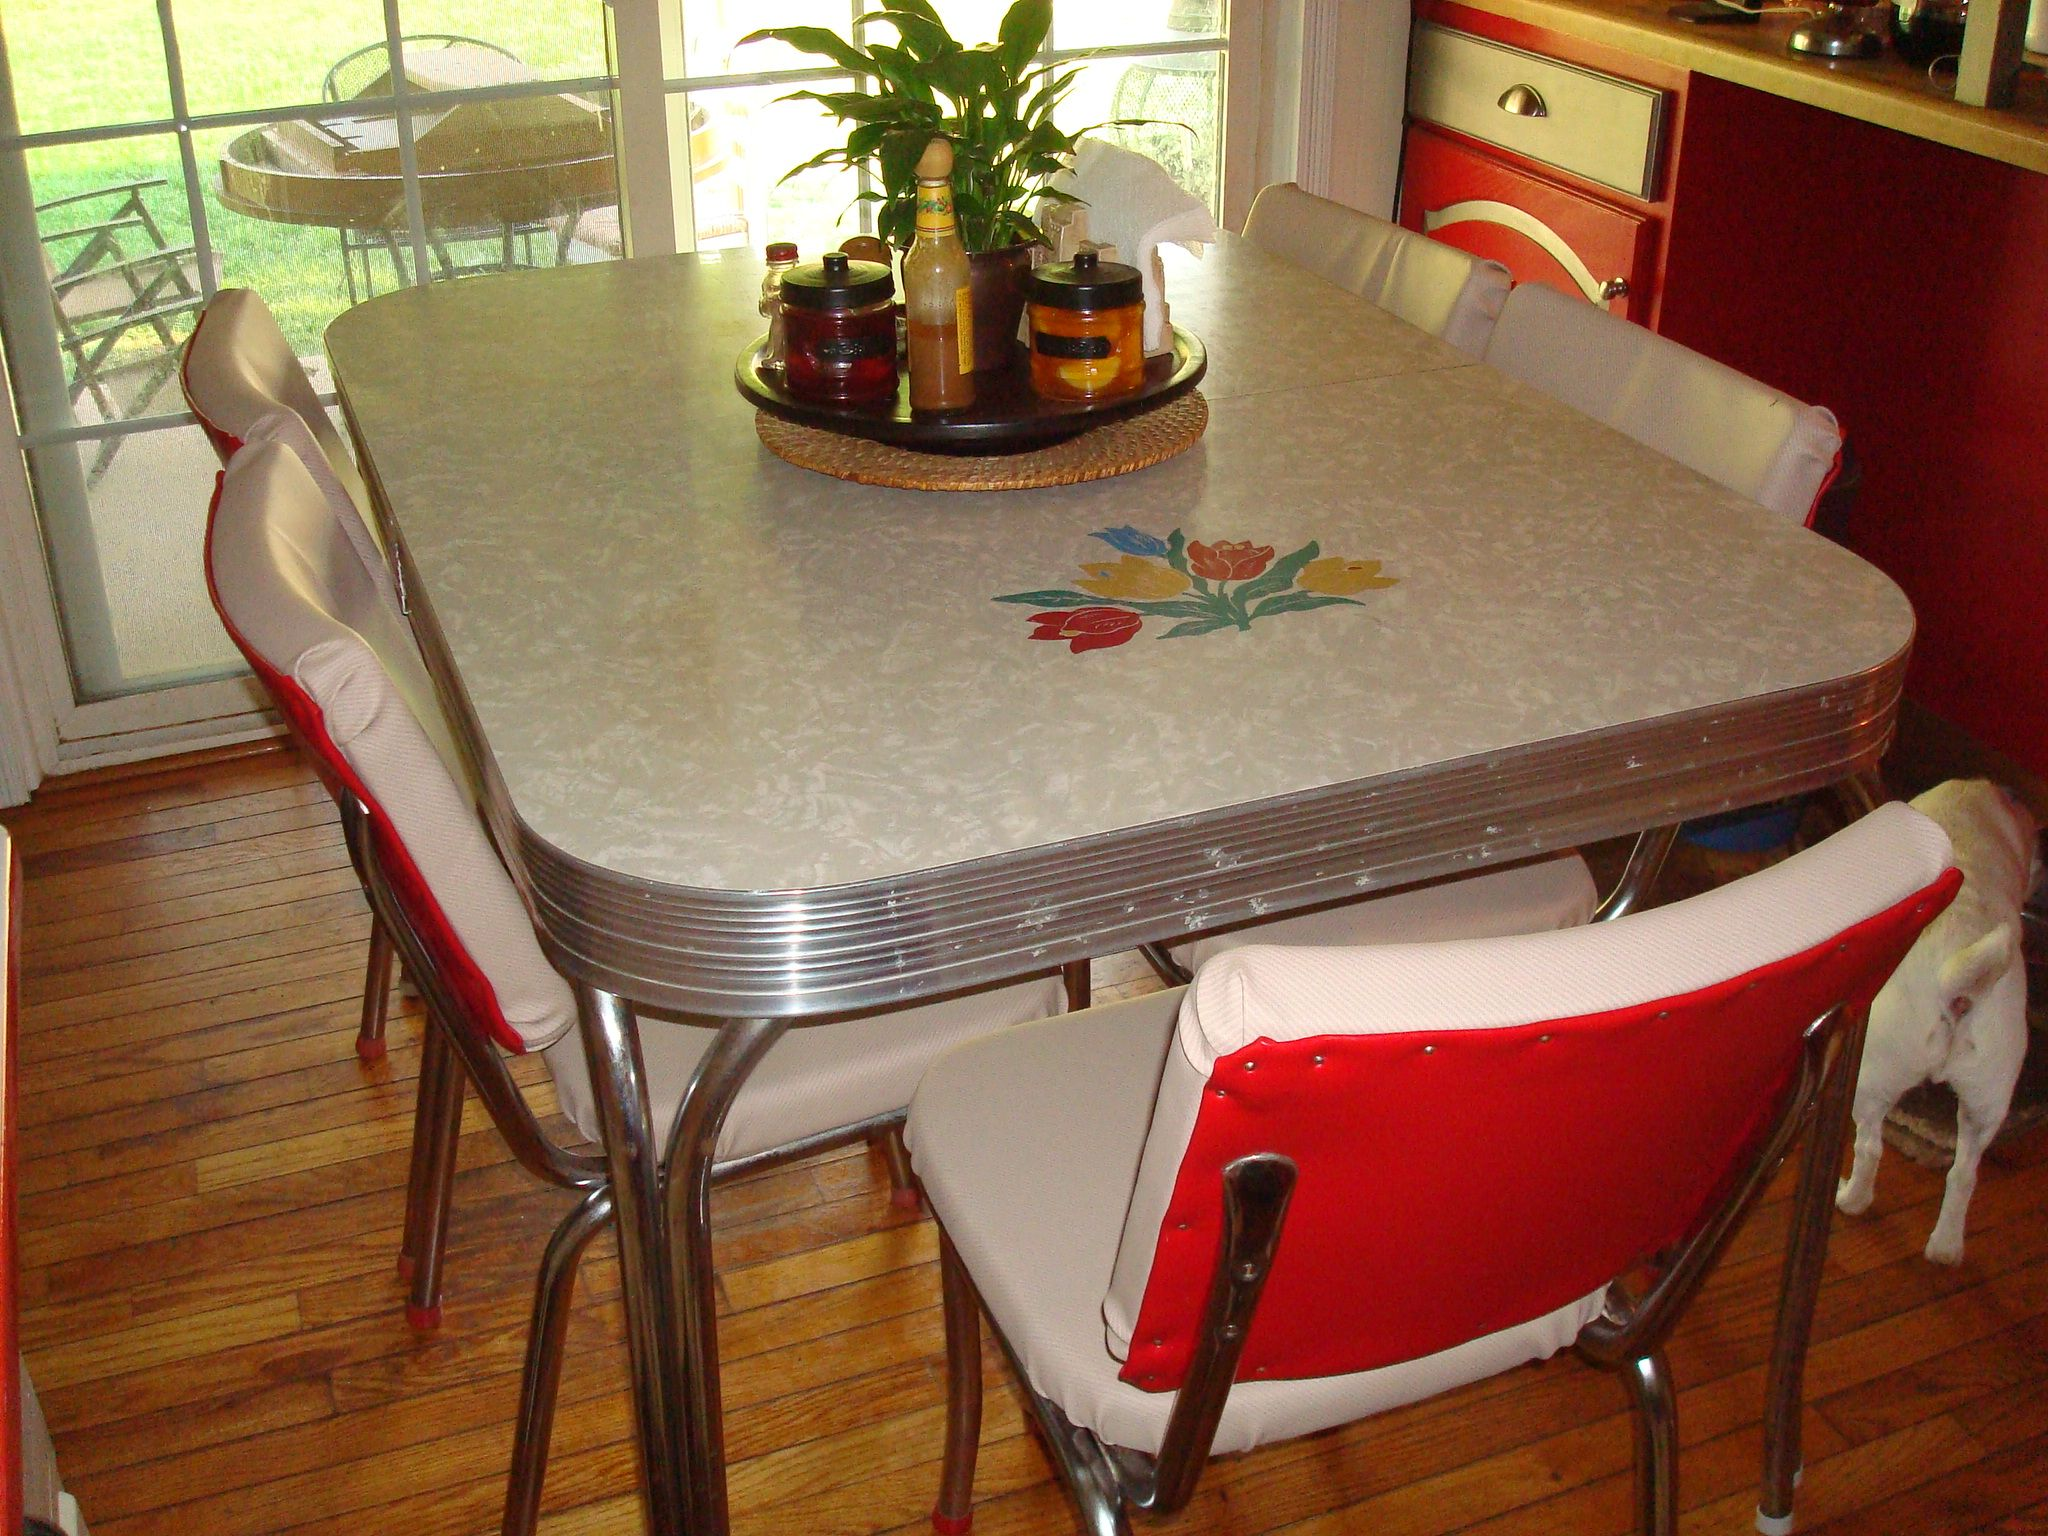 Retro kitchen table...have this same table in my shed. & Retro kitchen table...have this same table in my shed...super ...